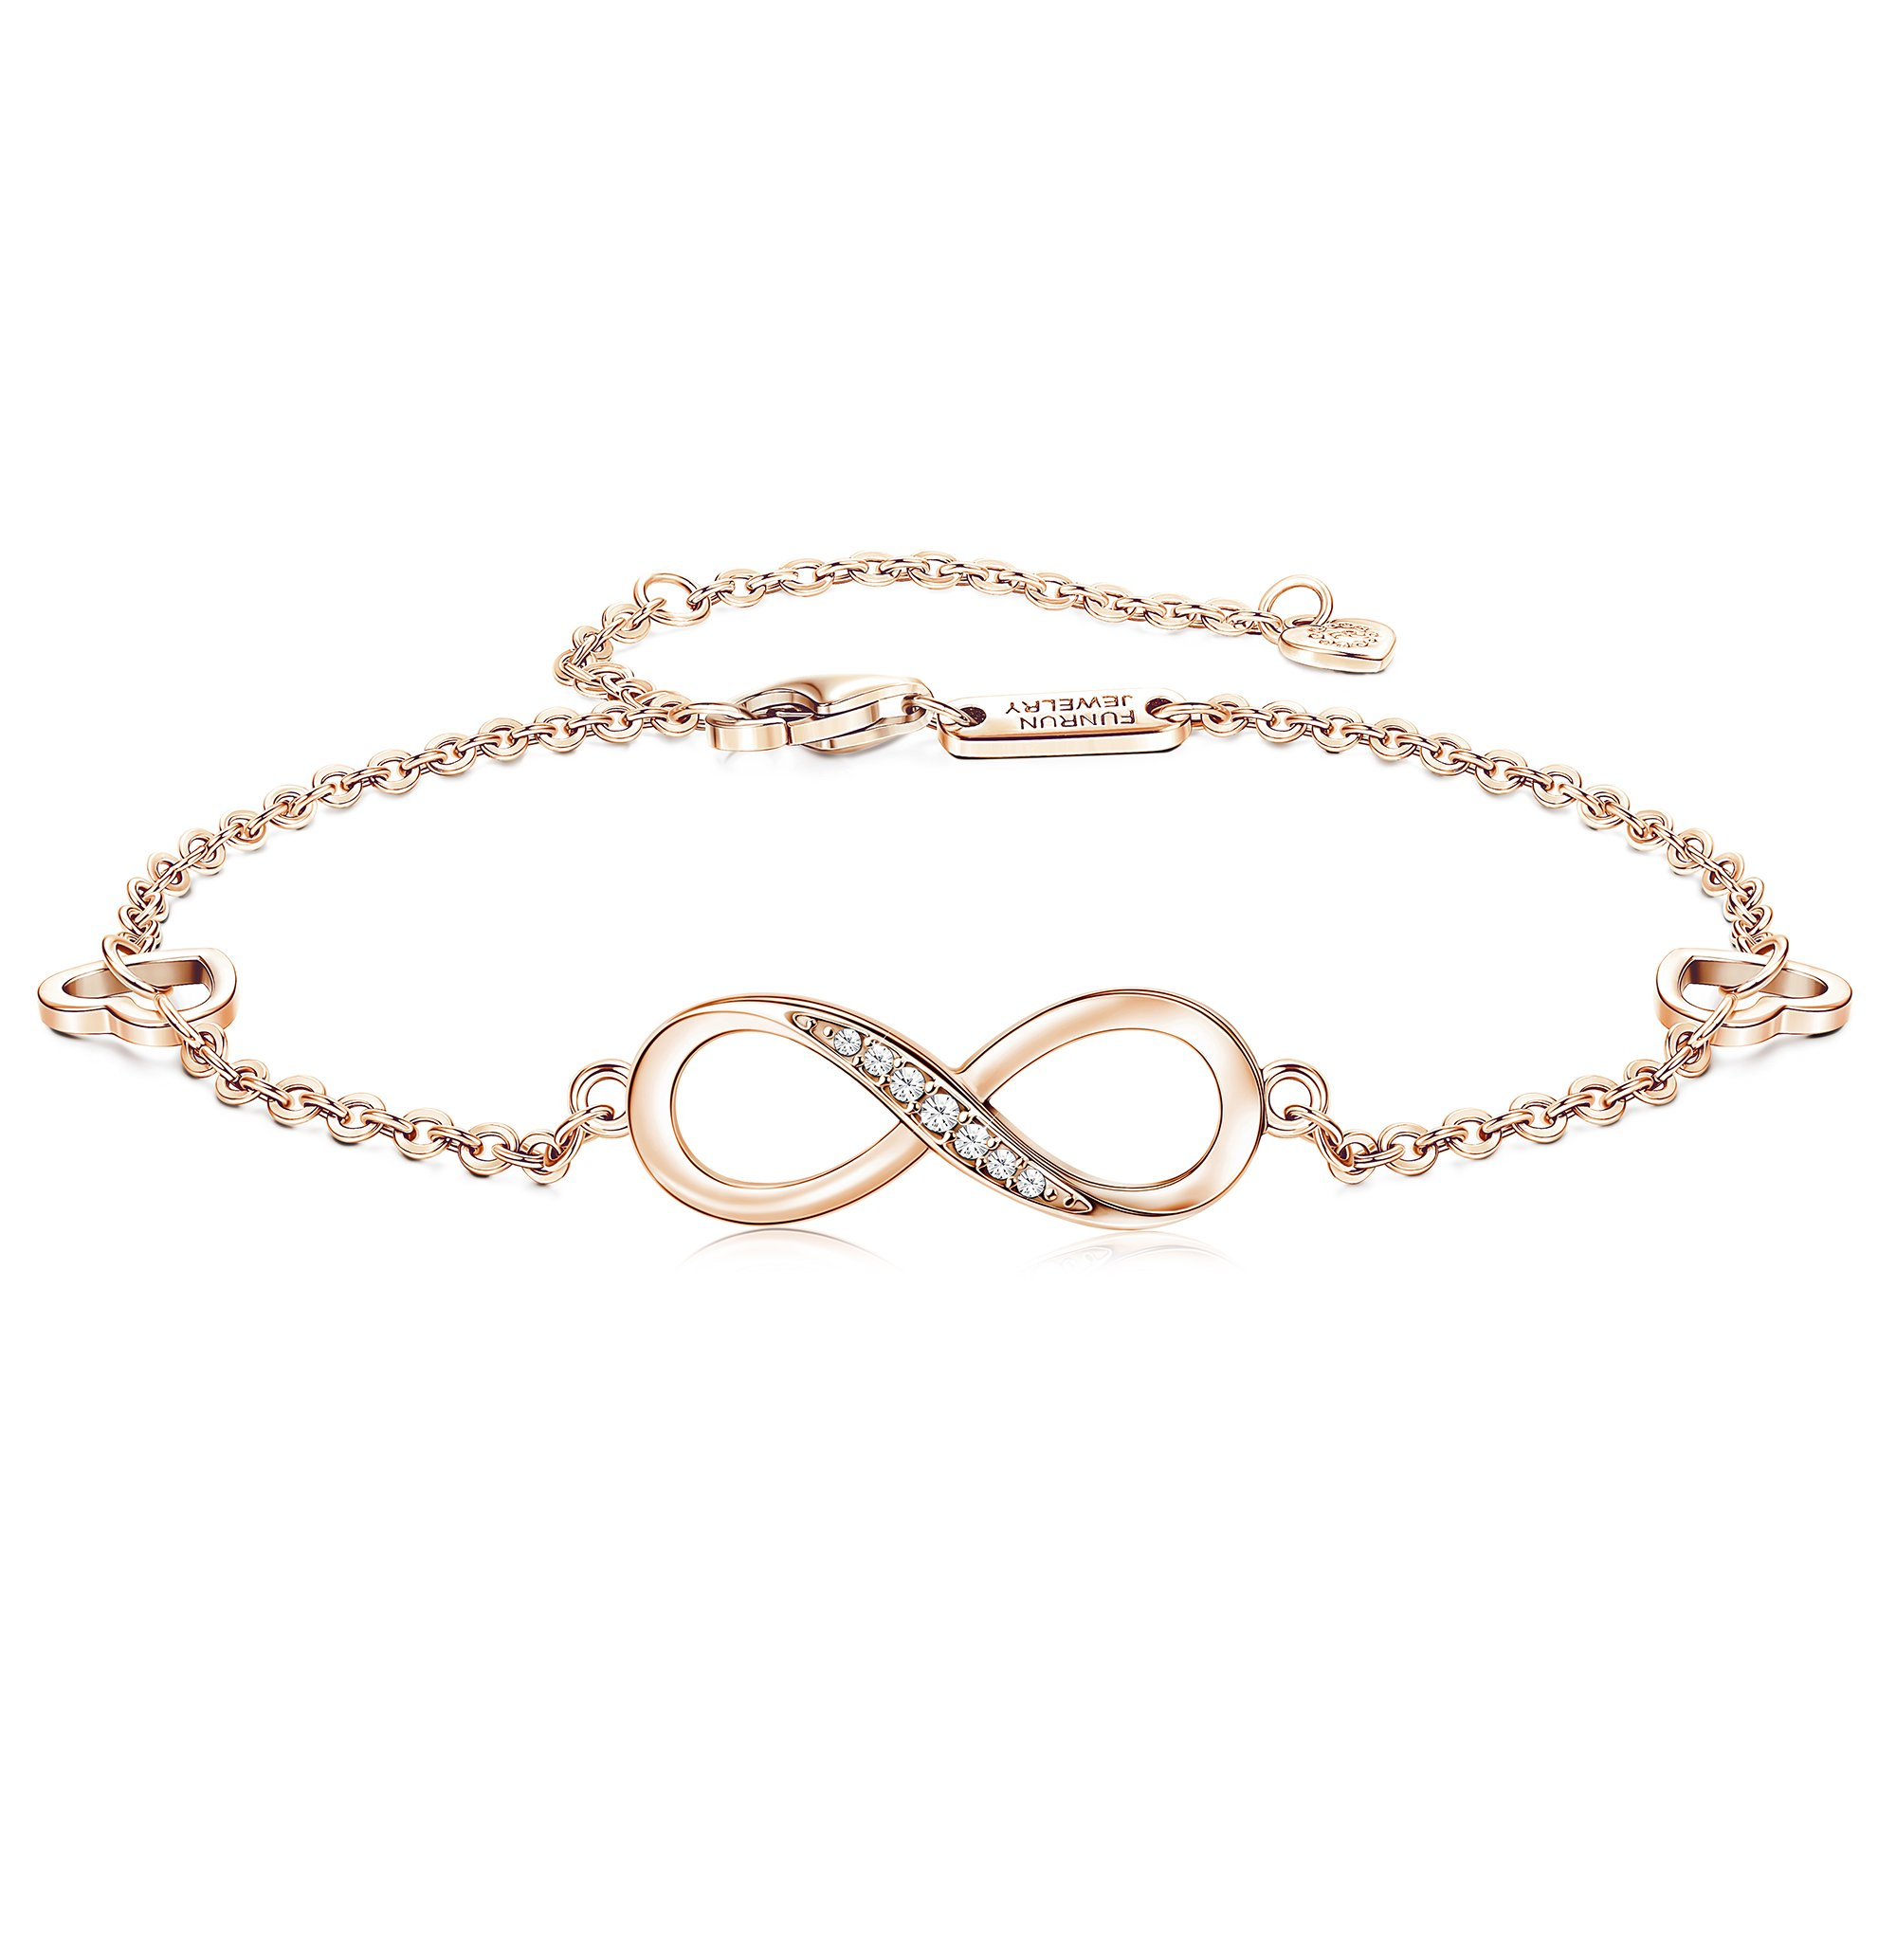 FUNRUN JEWELRY 925 Sterling Silver Infinity Bracelets and Anklet Bracelets for Women Girls 4-Level Adjustable Length Gift for Mother's Day (Anklet(Rose Gold Plated:8.5''+1.77'' Extender Chain))